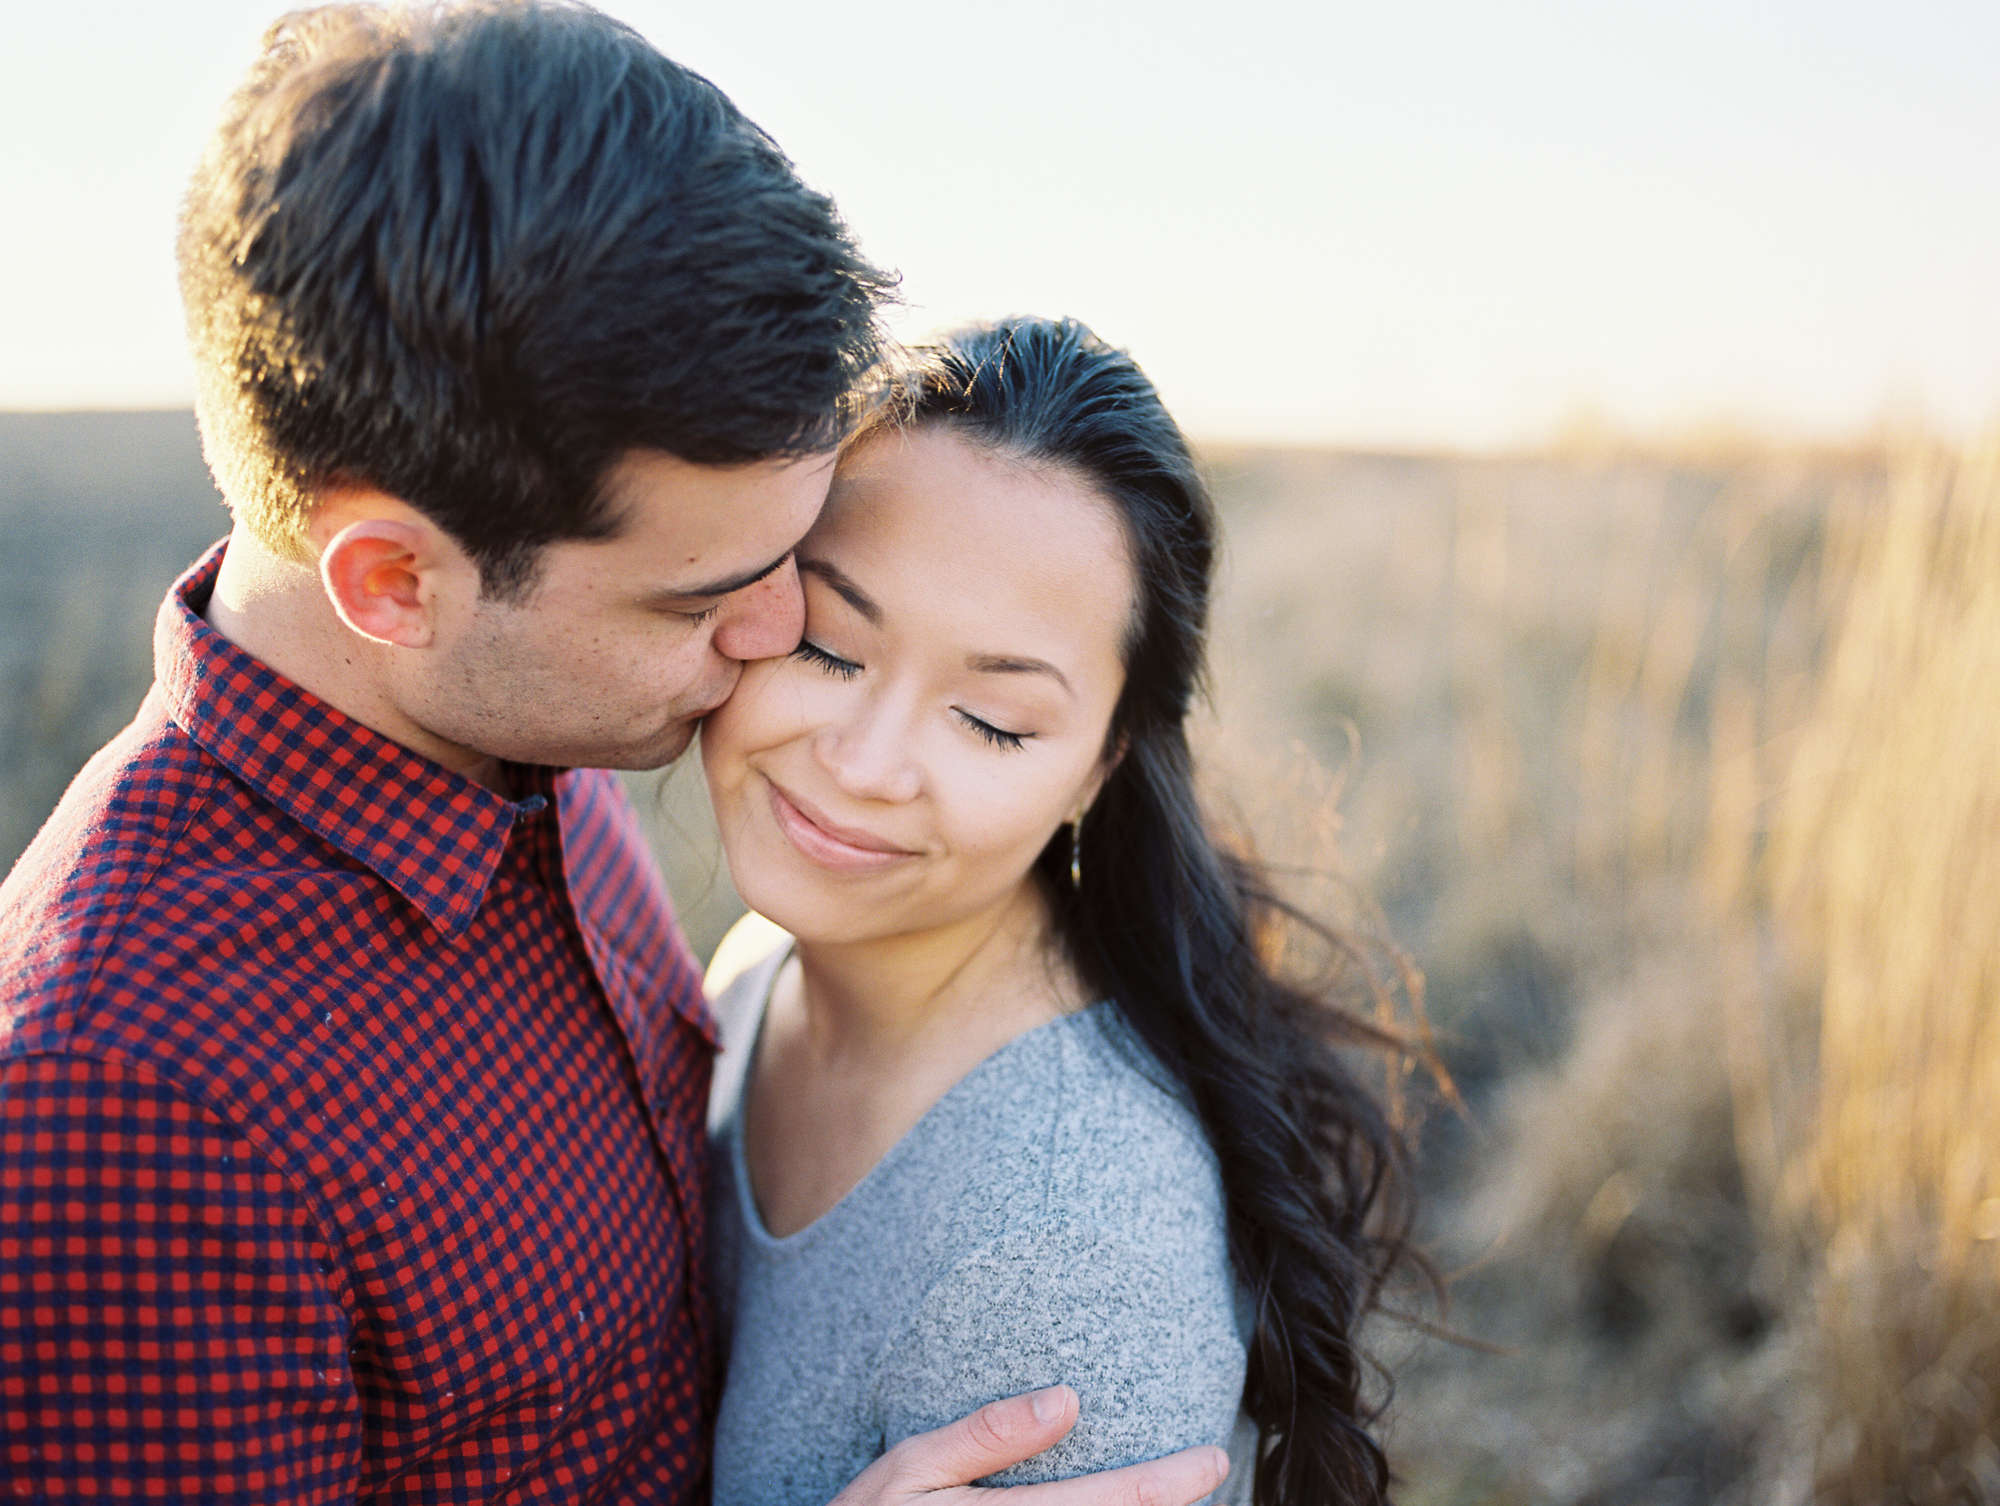 Megan and Blake - Memphis Engagement Photos - © Kaitlyn Stoddard Photography-5.jpg